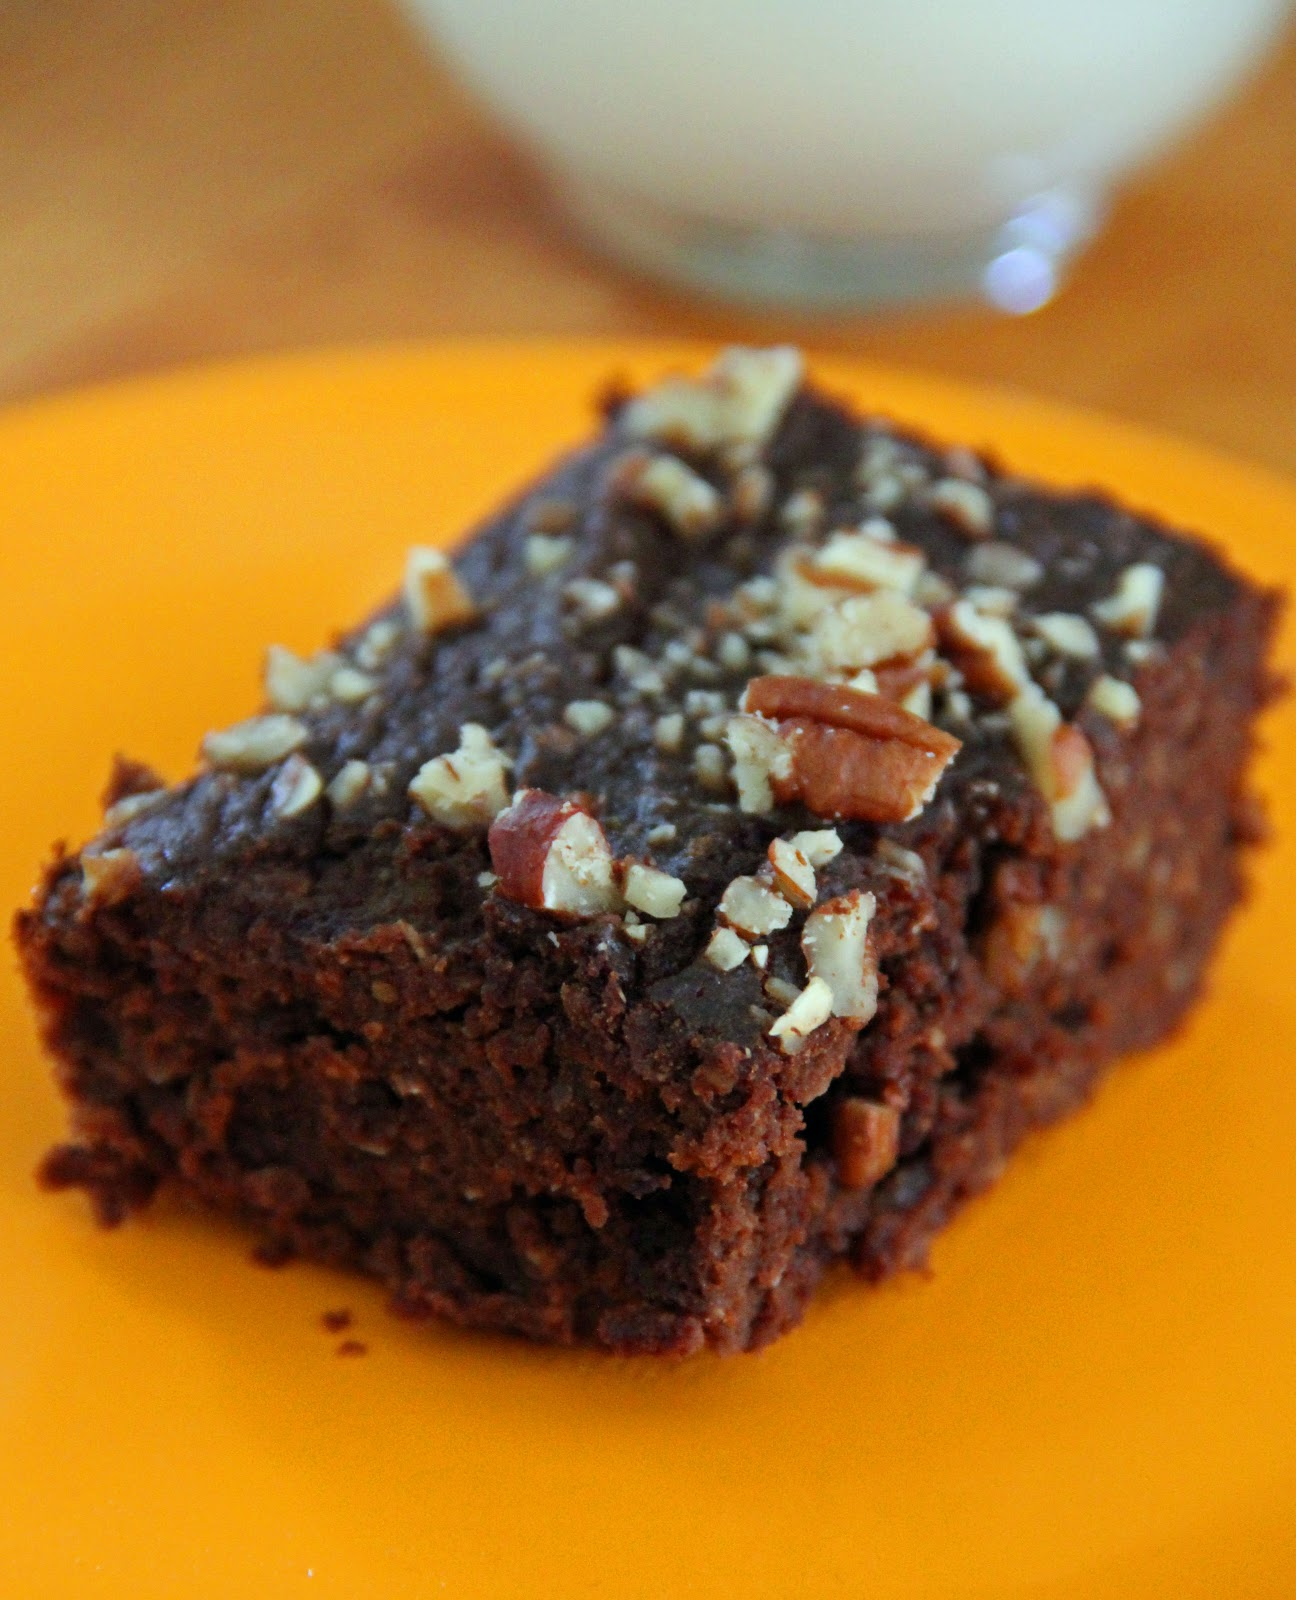 Jo and Sue: Chocolate Chickpea Cake